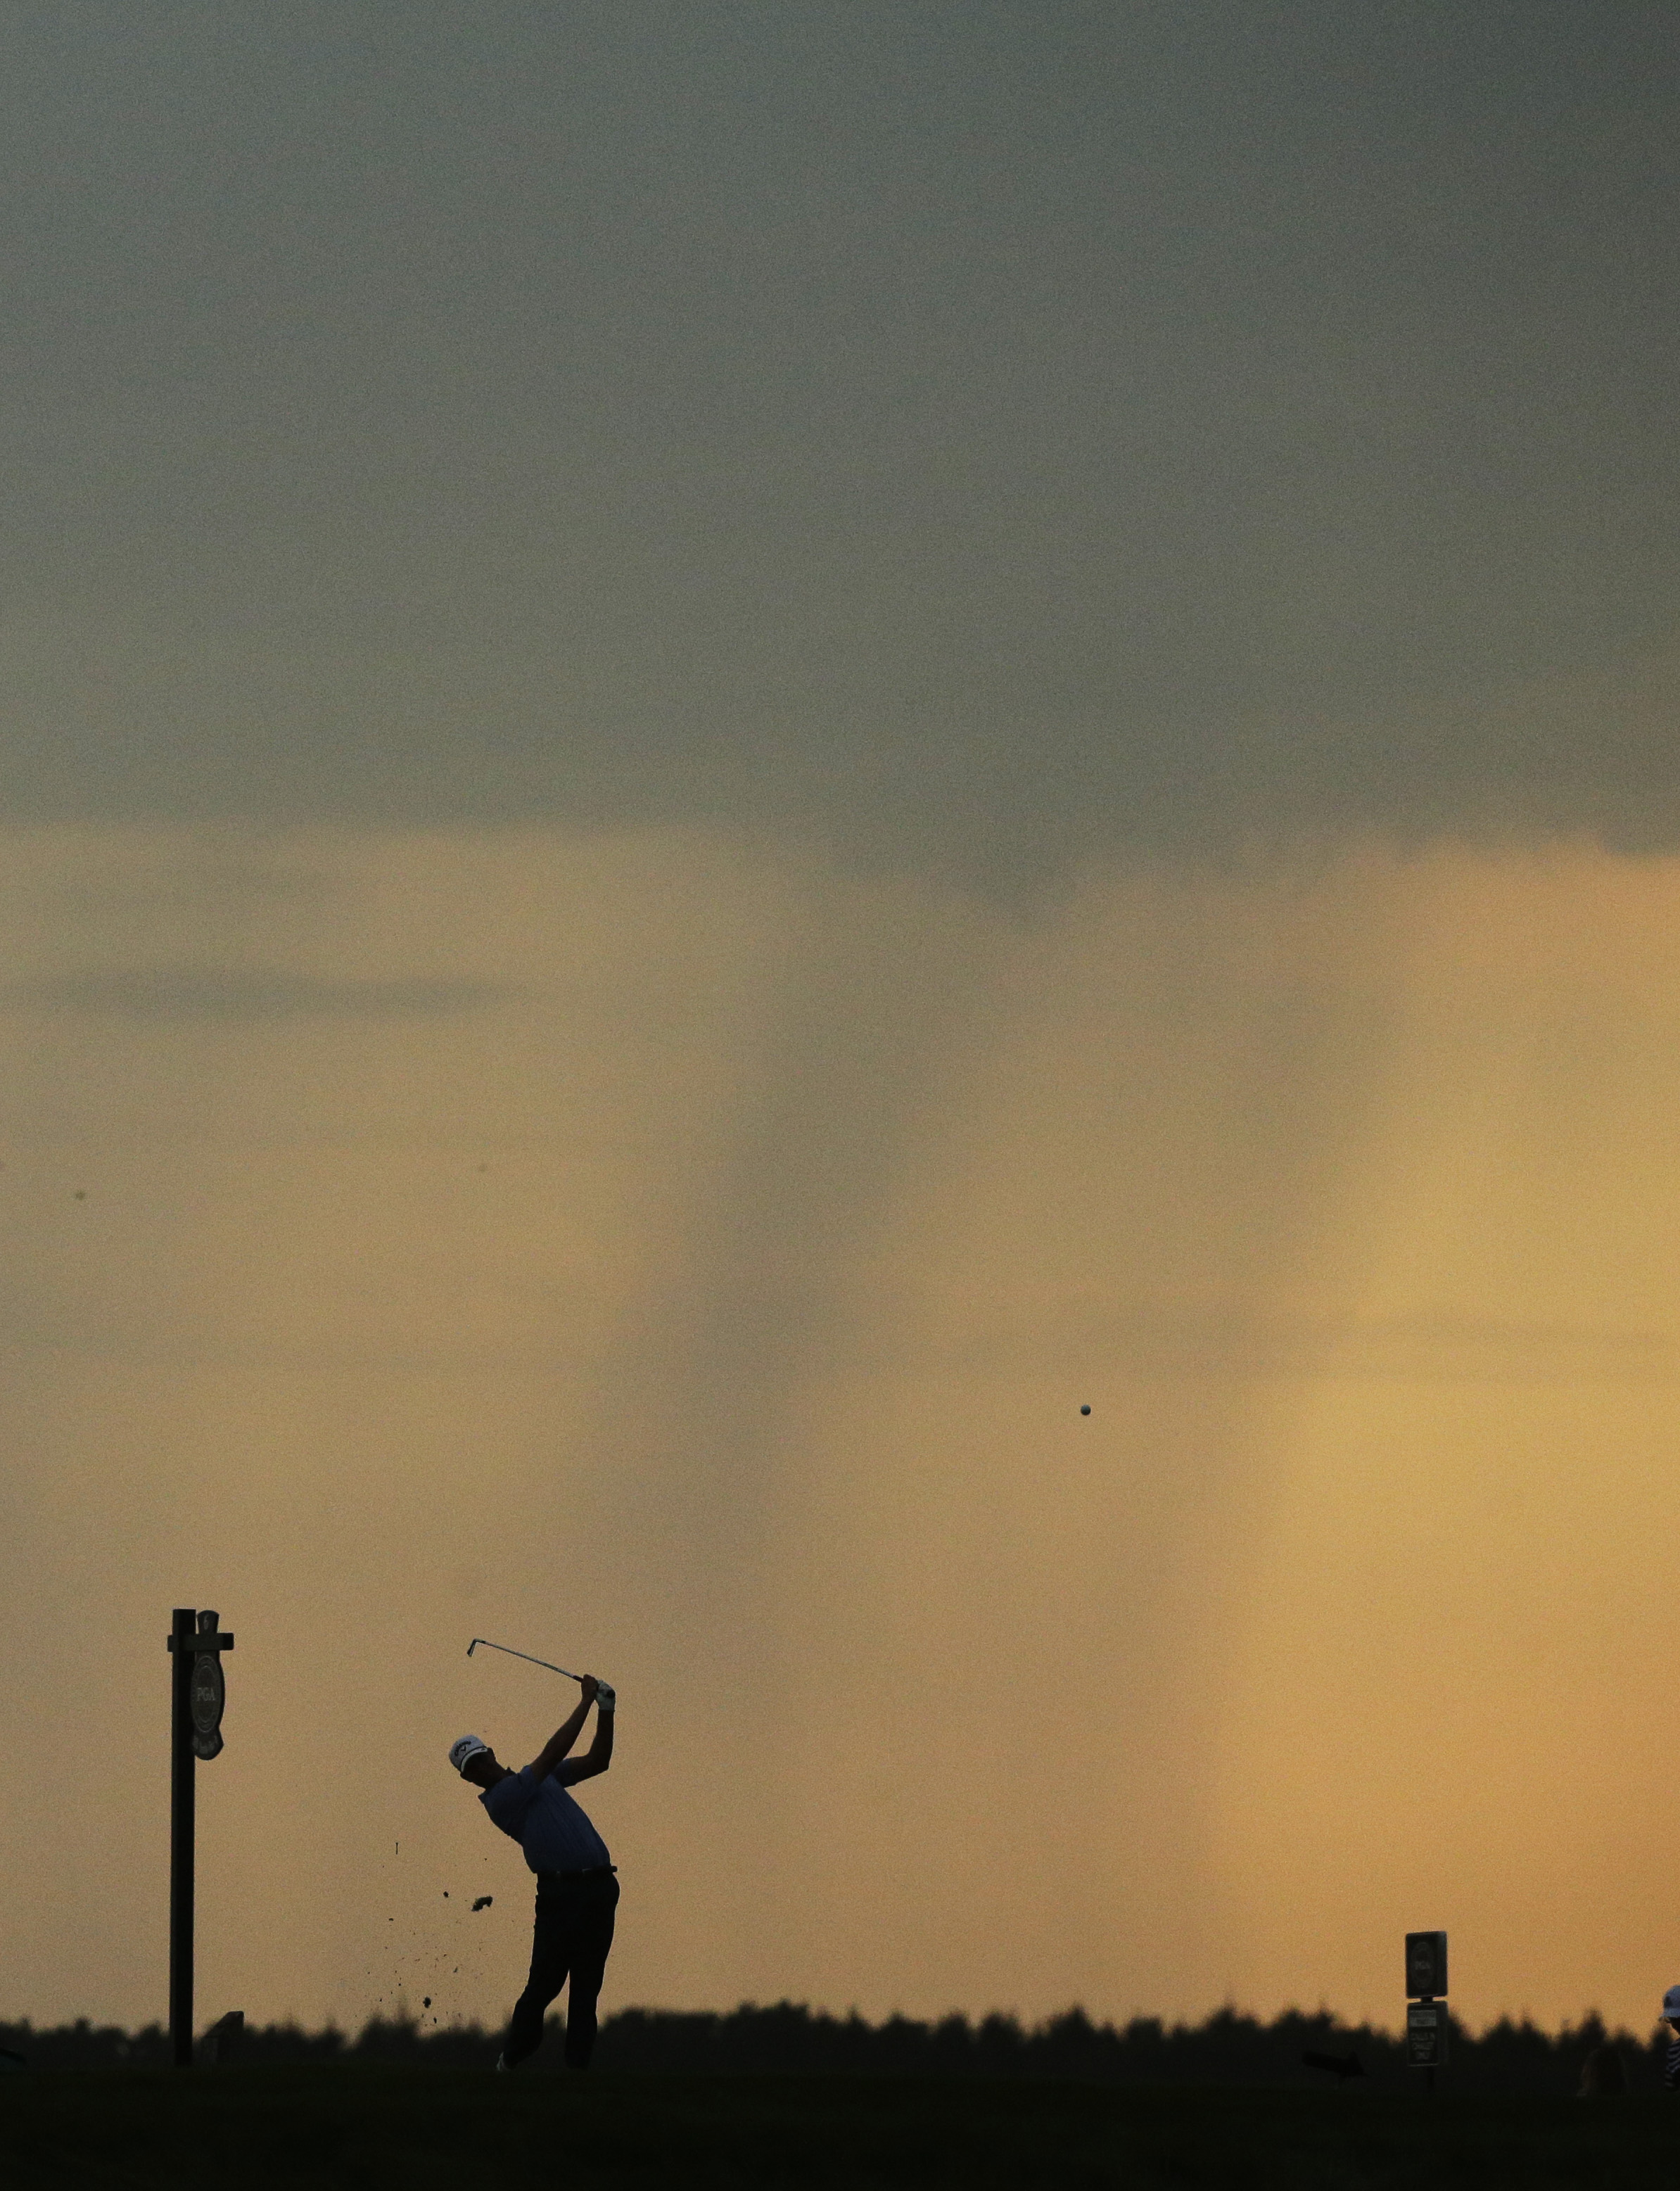 Harris English hits off the with tee as weather rolls in during the second round of the PGA Championship golf tournament Friday, Aug. 14, 2015, at Whistling Straits in Haven, Wis. Play was suspended. (AP Photo/Jae Hong)